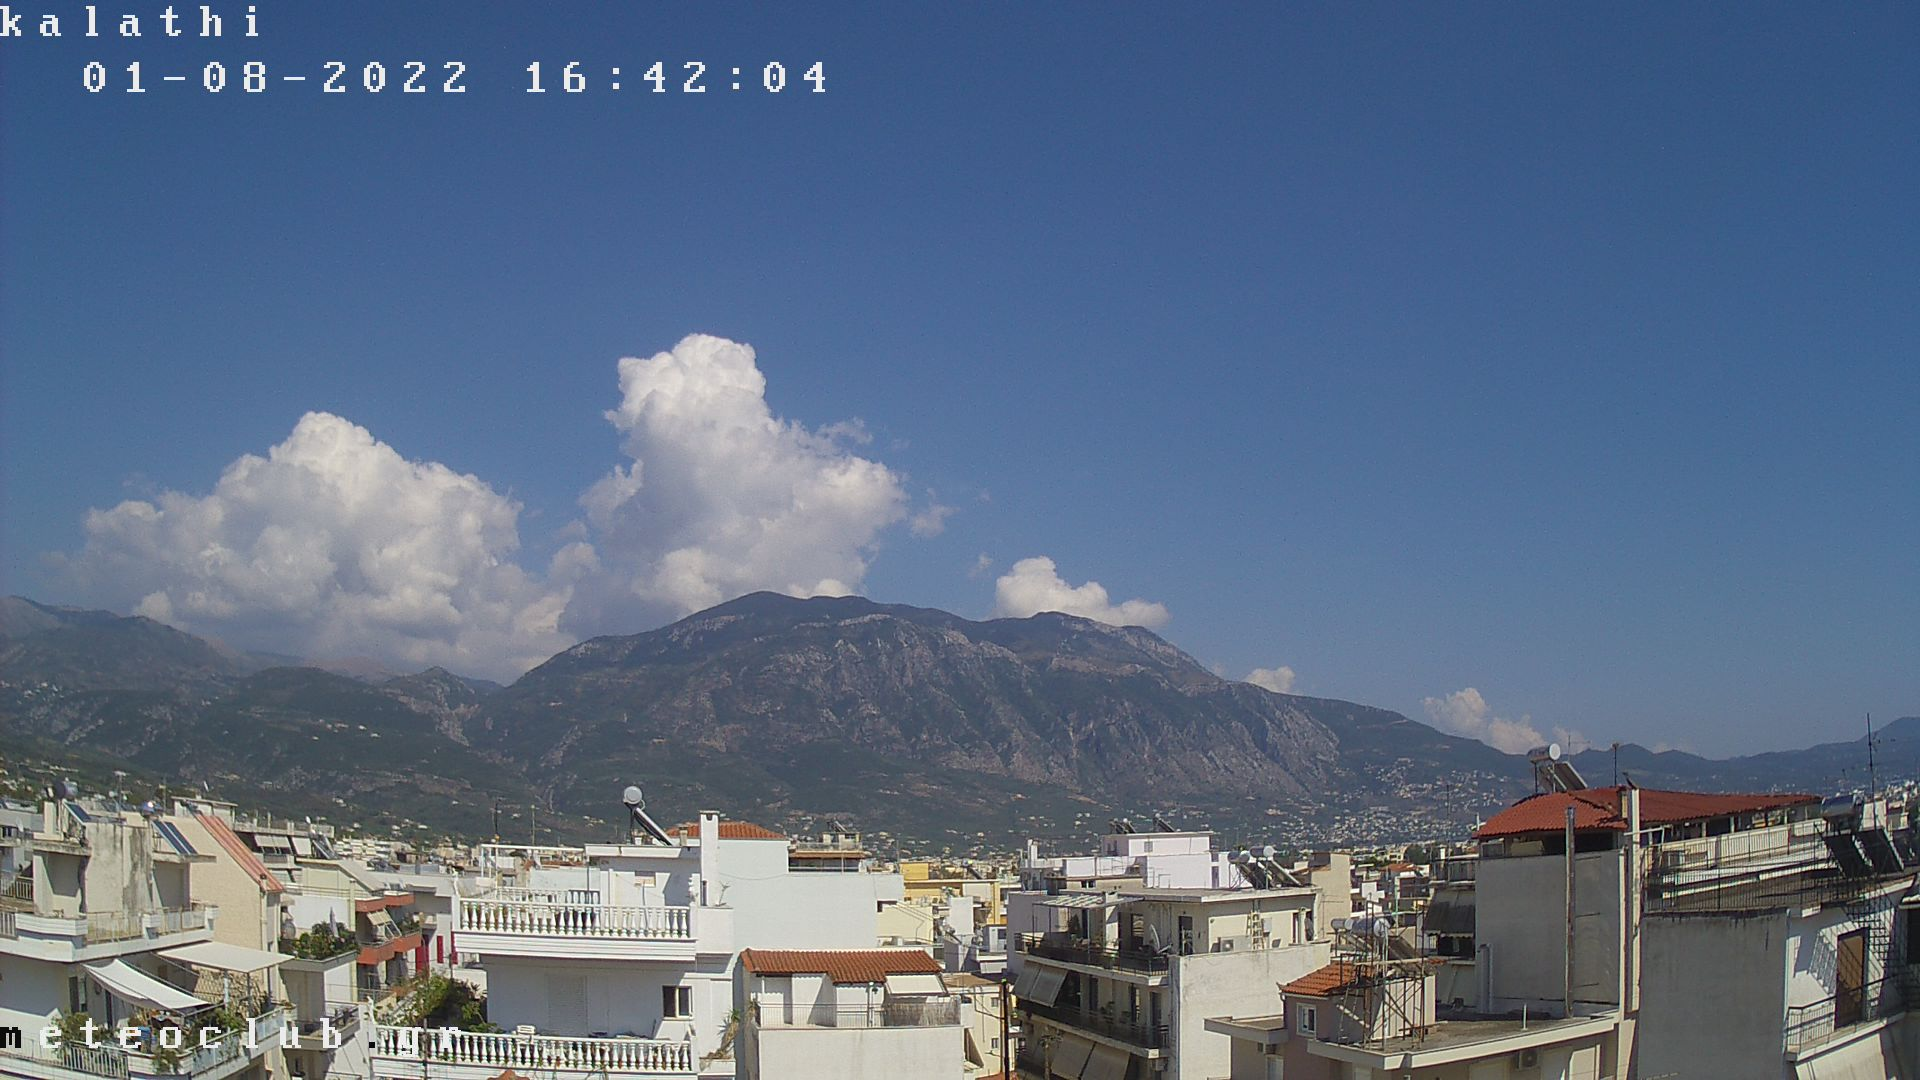 Kalamata – Taygetos Gebirge Webcam Live